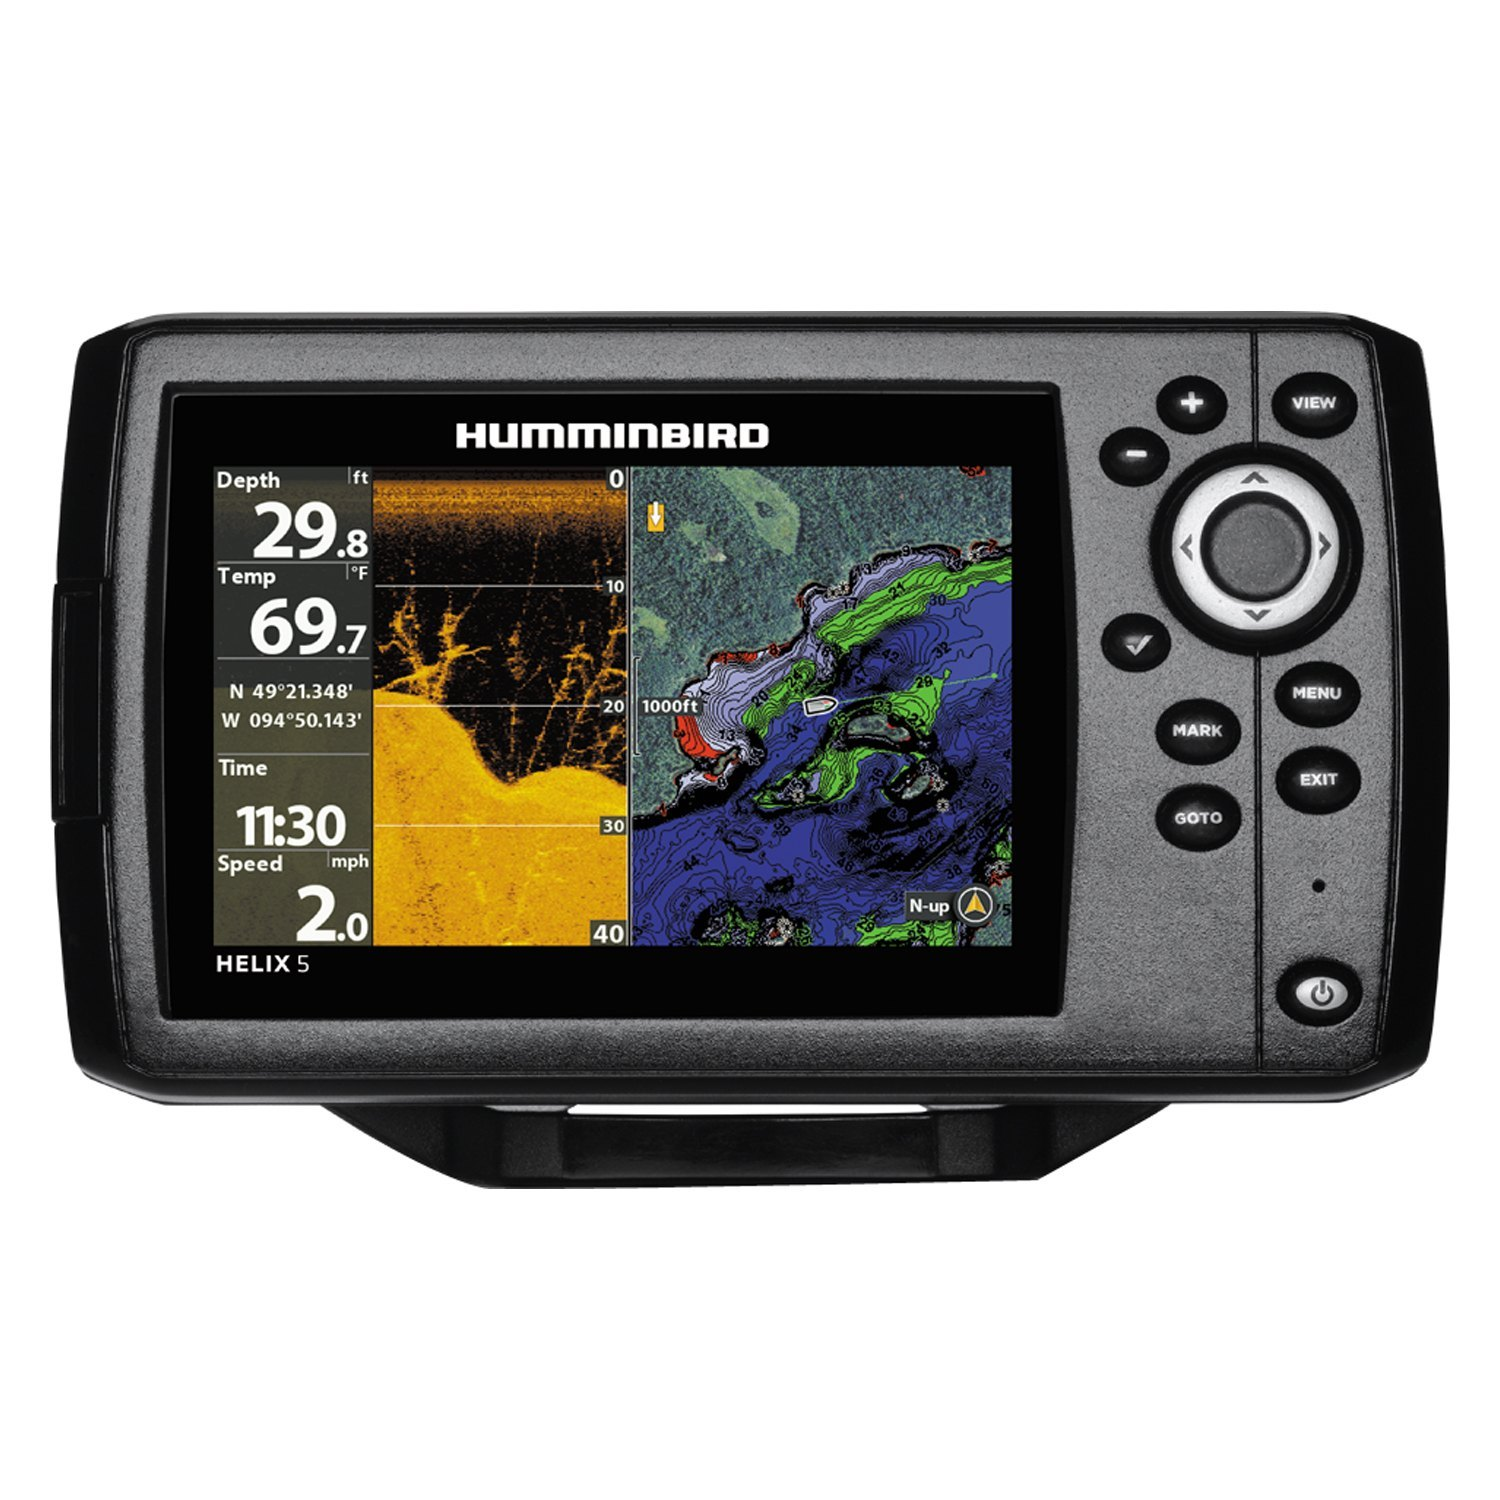 humminbird 410220 1 helix g2 5 di gps 5 fish finder chartplotter with transducer basemap. Black Bedroom Furniture Sets. Home Design Ideas